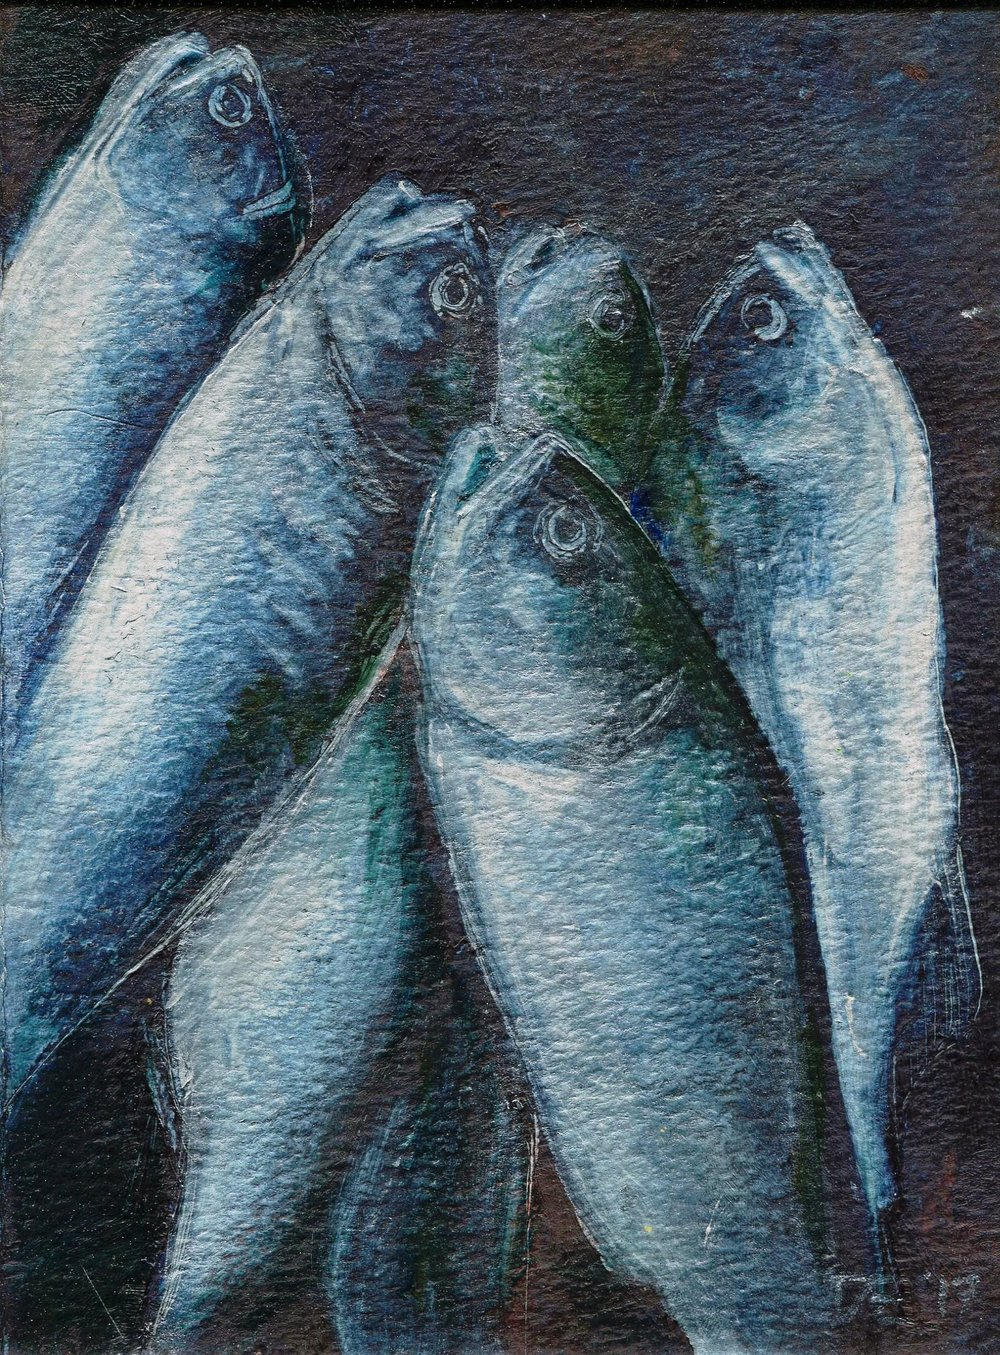 90B DORET EGE, CATCH OF THE DAY, OIL OVER ACRYLIC ON PAPER